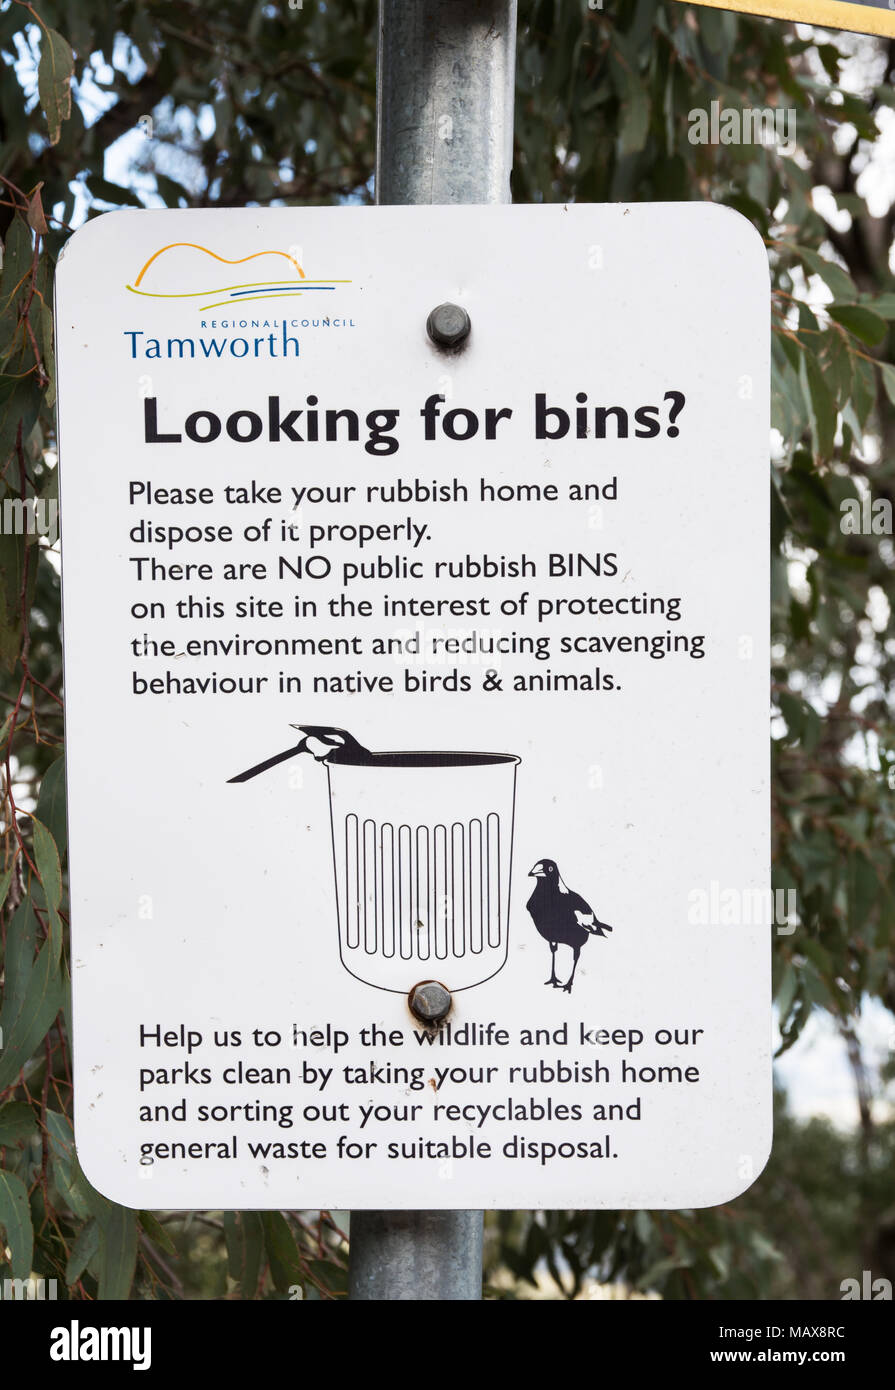 There are no rubbish bins. Sign in a park at Hanging Rock NSW Australia. - Stock Image